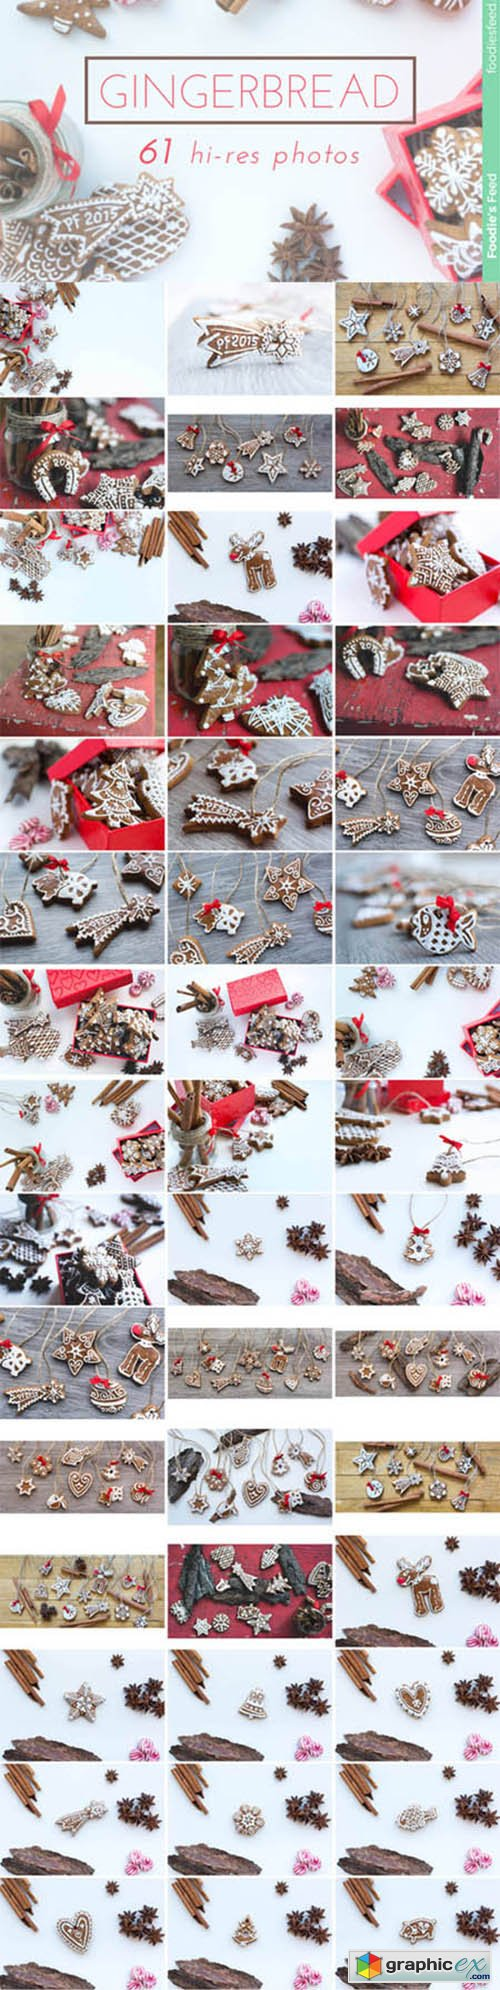 GINGERBREAD - Premium Photo Package